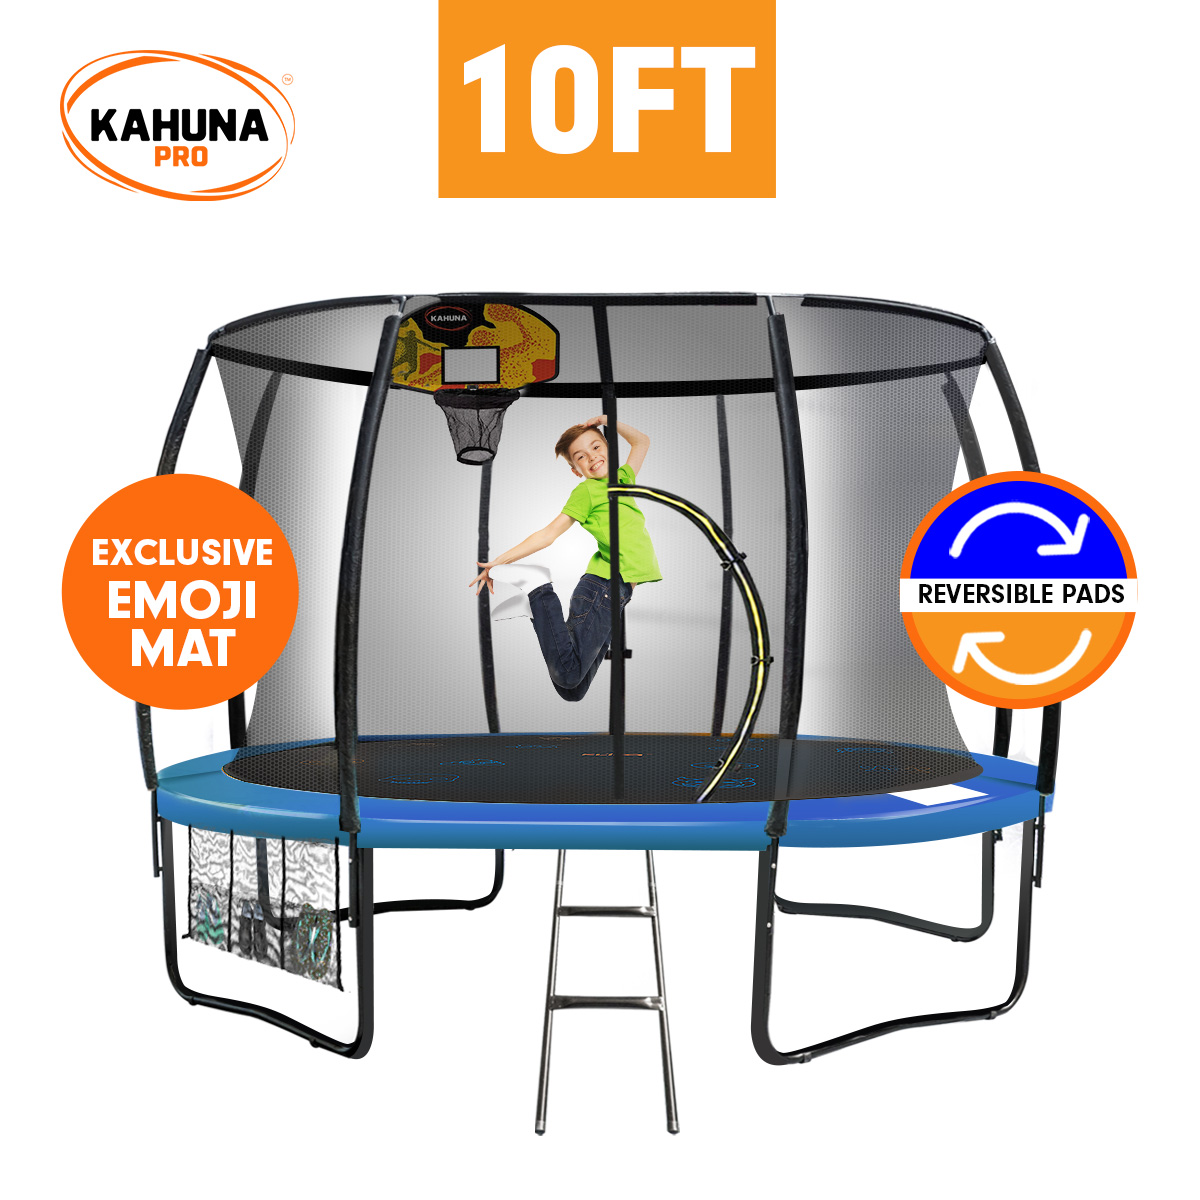 Kahuna Pro 10 ft Trampoline with Emoji Mat Reversible Pad Basketball Set